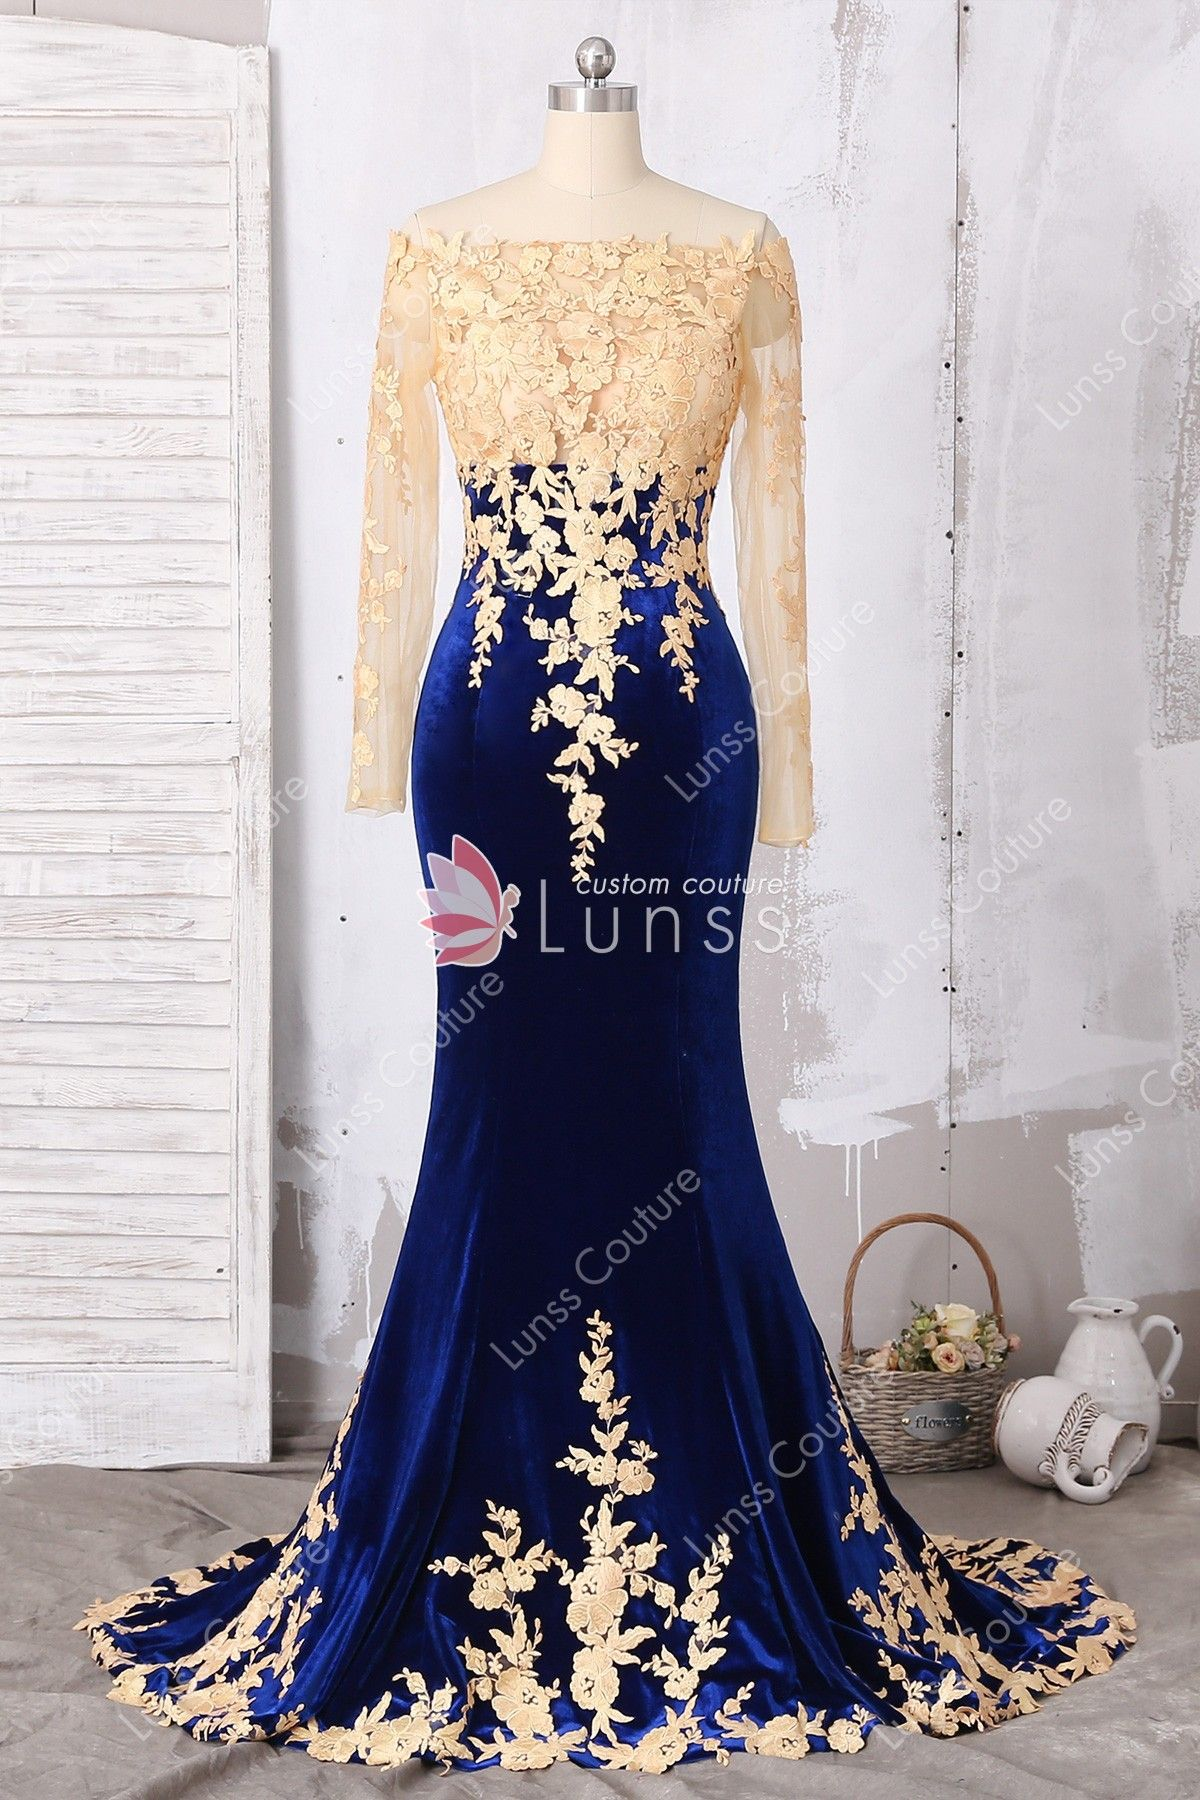 d727dbf33b5 Gold Lace Appliqued Illusion Long Sleeve Fit-n-flare Royal Blue Velvet Prom  Dress